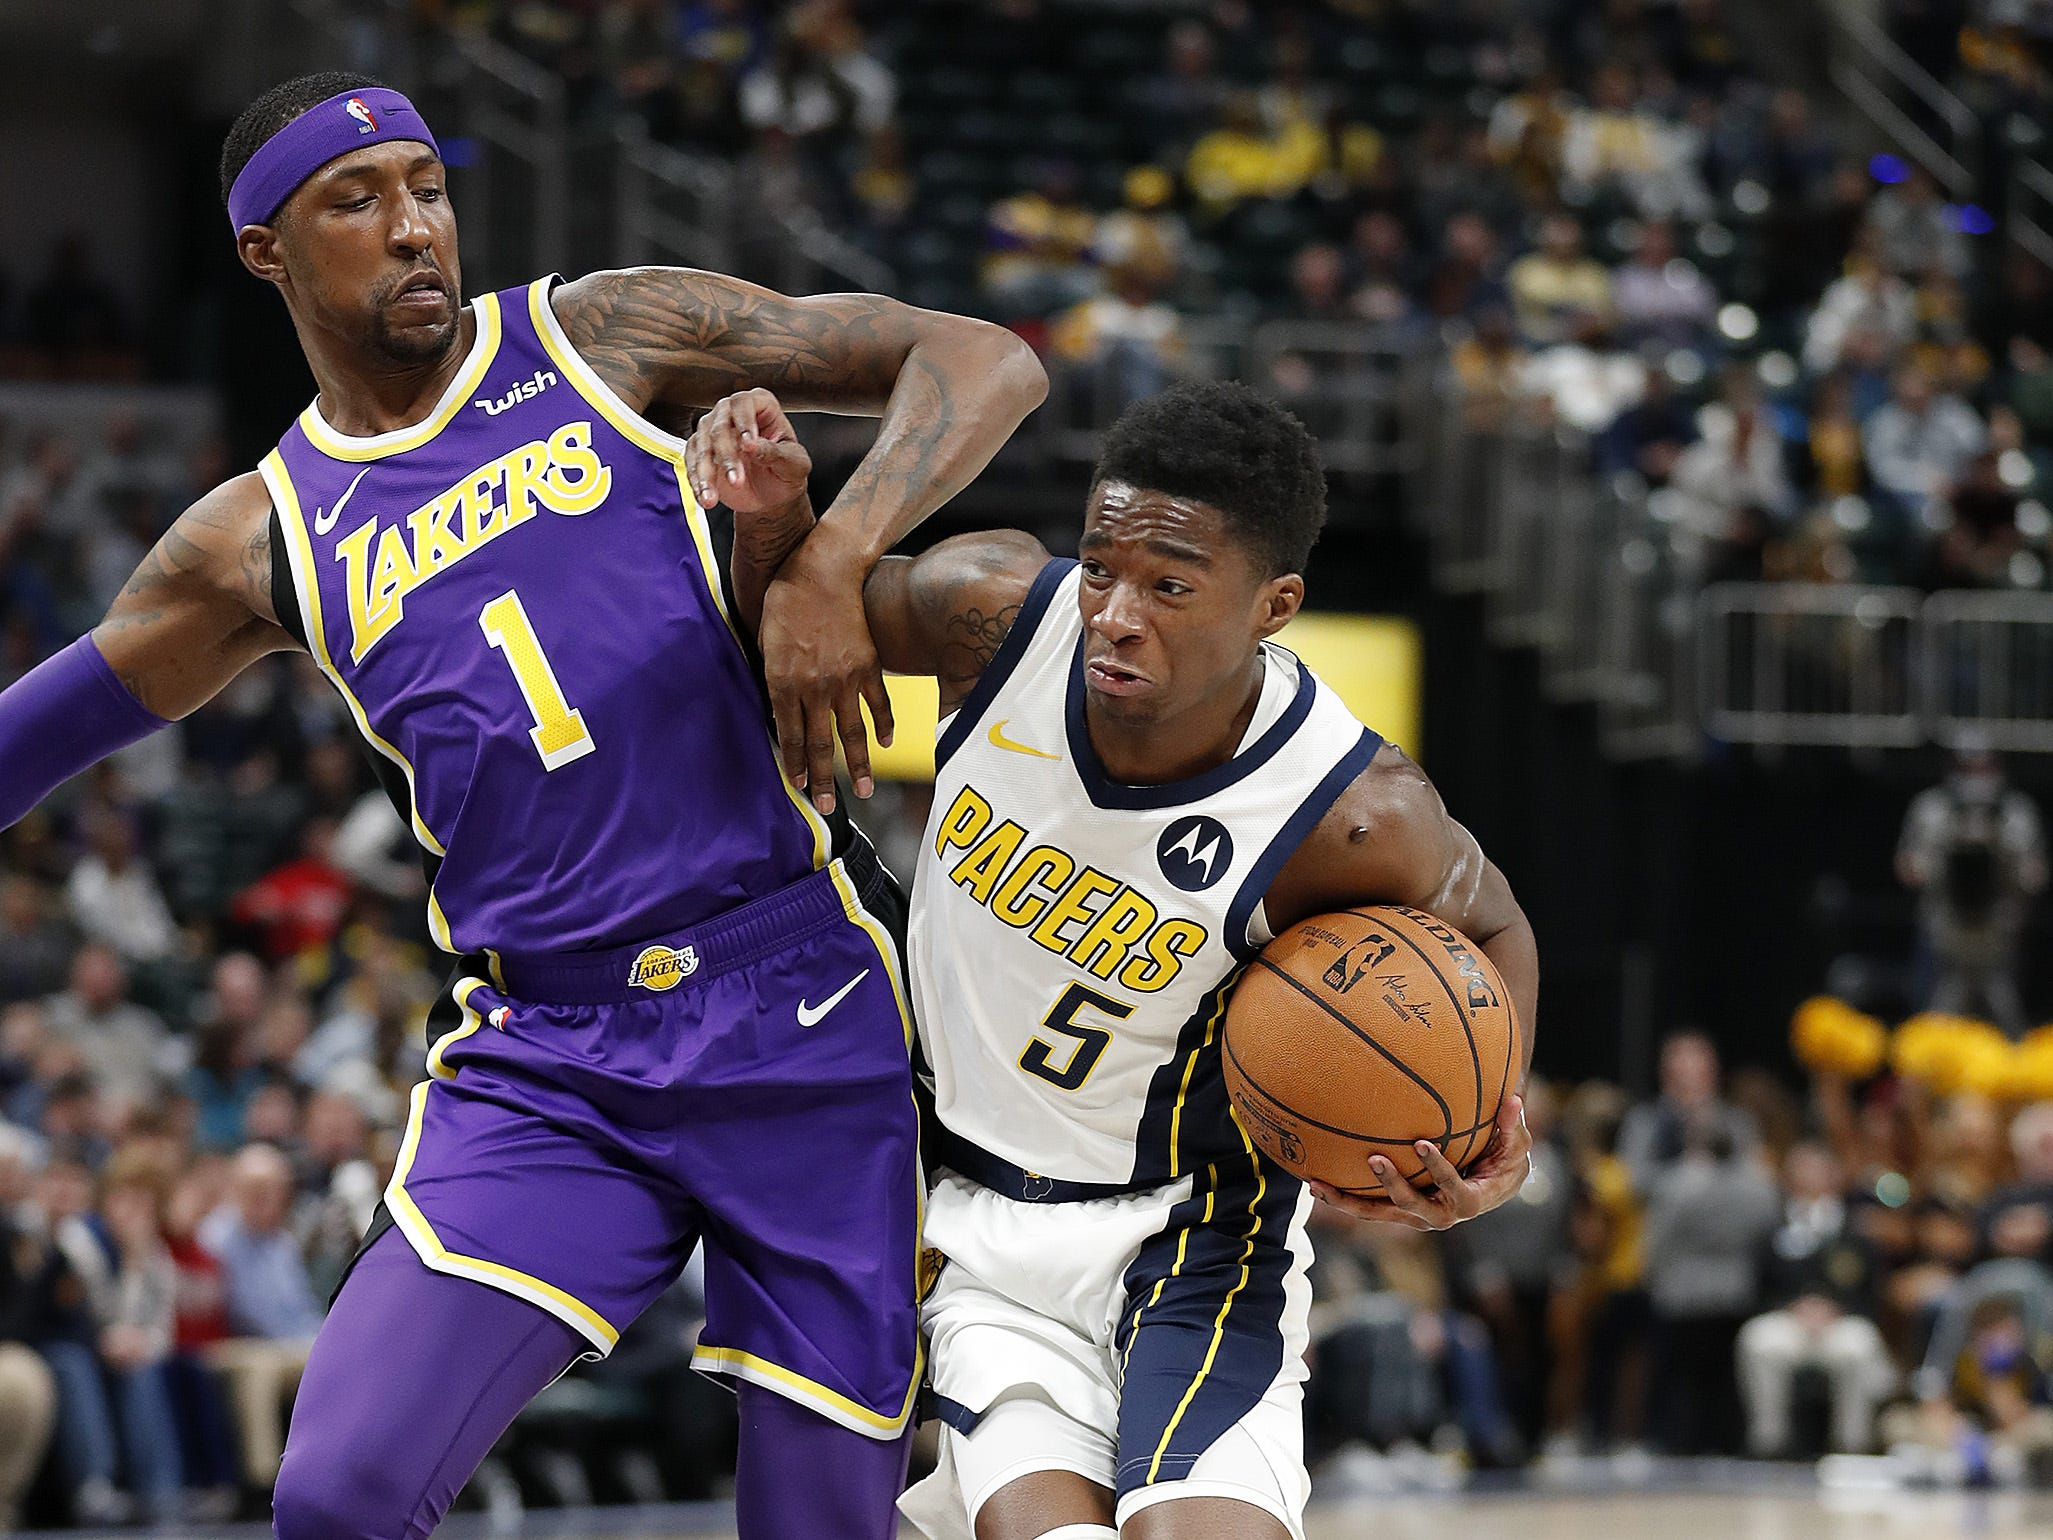 Indiana Pacers guard Edmond Sumner (5) drives on Los Angeles Lakers guard Kentavious Caldwell-Pope (1) in the second half of their game at Bankers Life Fieldhouse on Tuesday, Feb. 5, 2019.